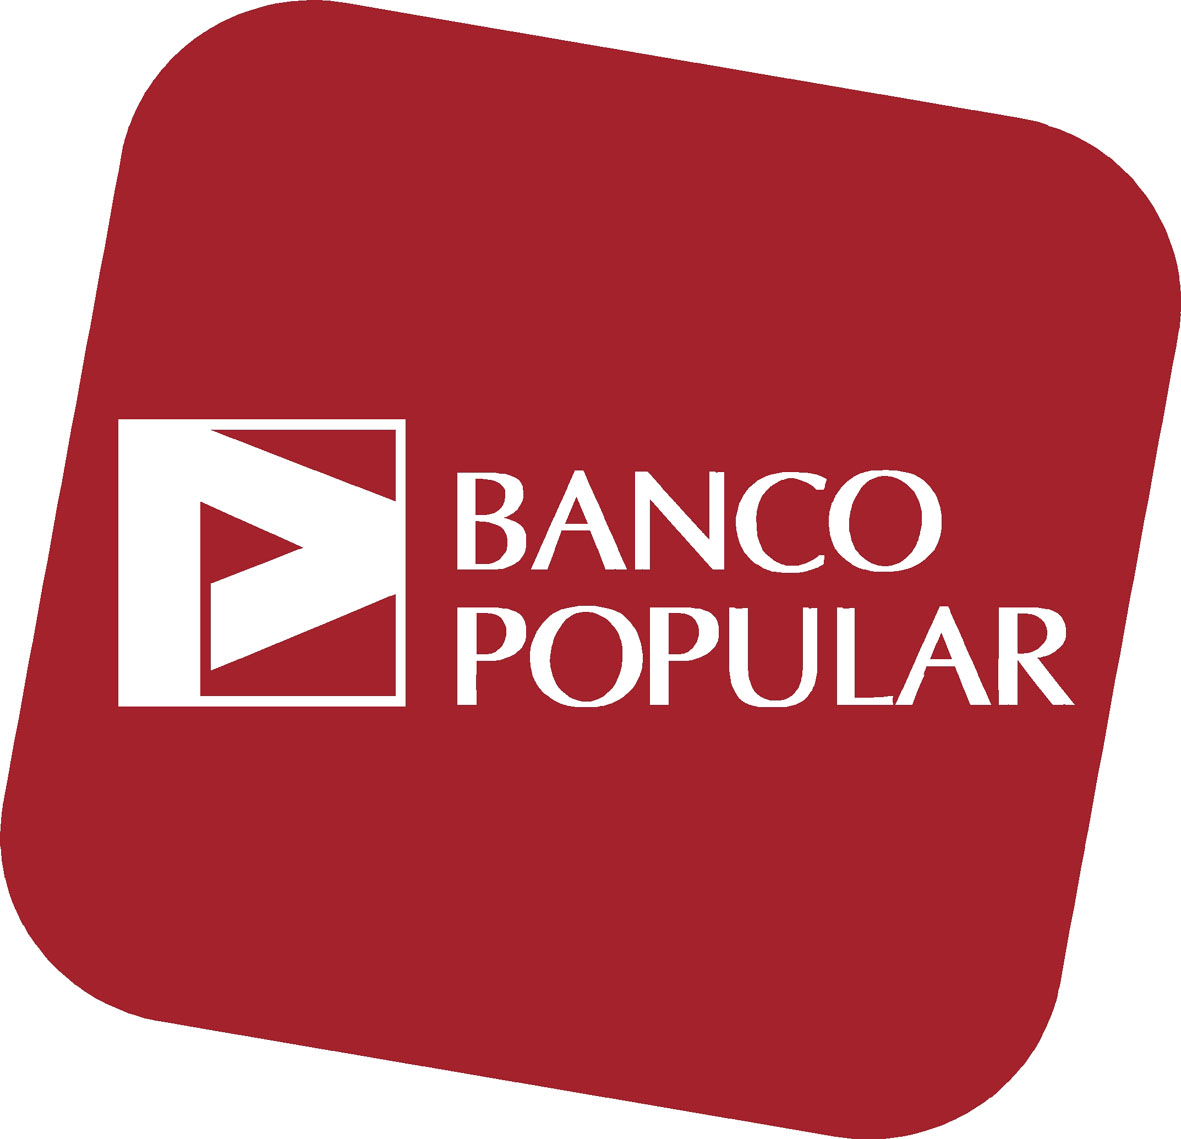 Banco Popular Hipotecario La Falsedad De Los Datos Del Banco Popular Permitirá